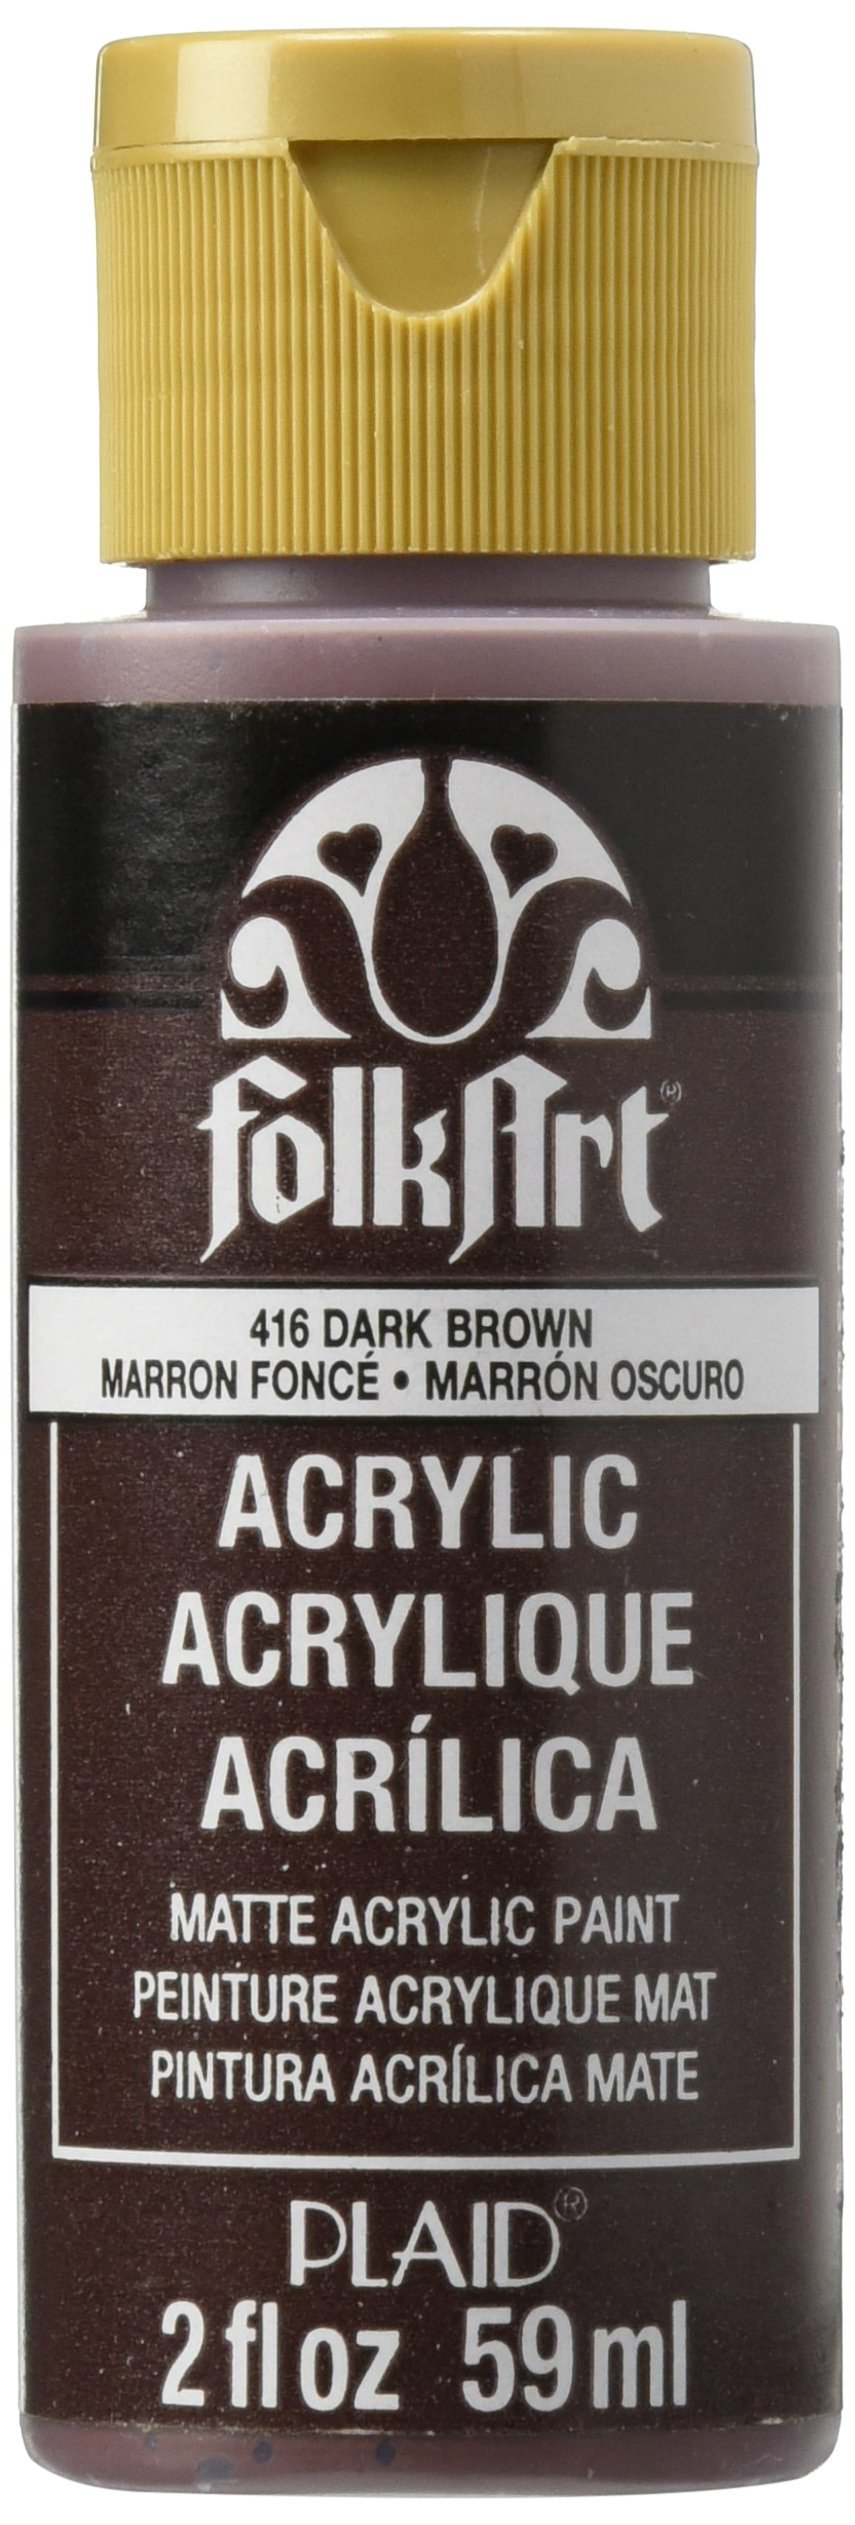 FolkArt Acrylic Paint in Assorted Colors (2 oz), 416, Dark Brown